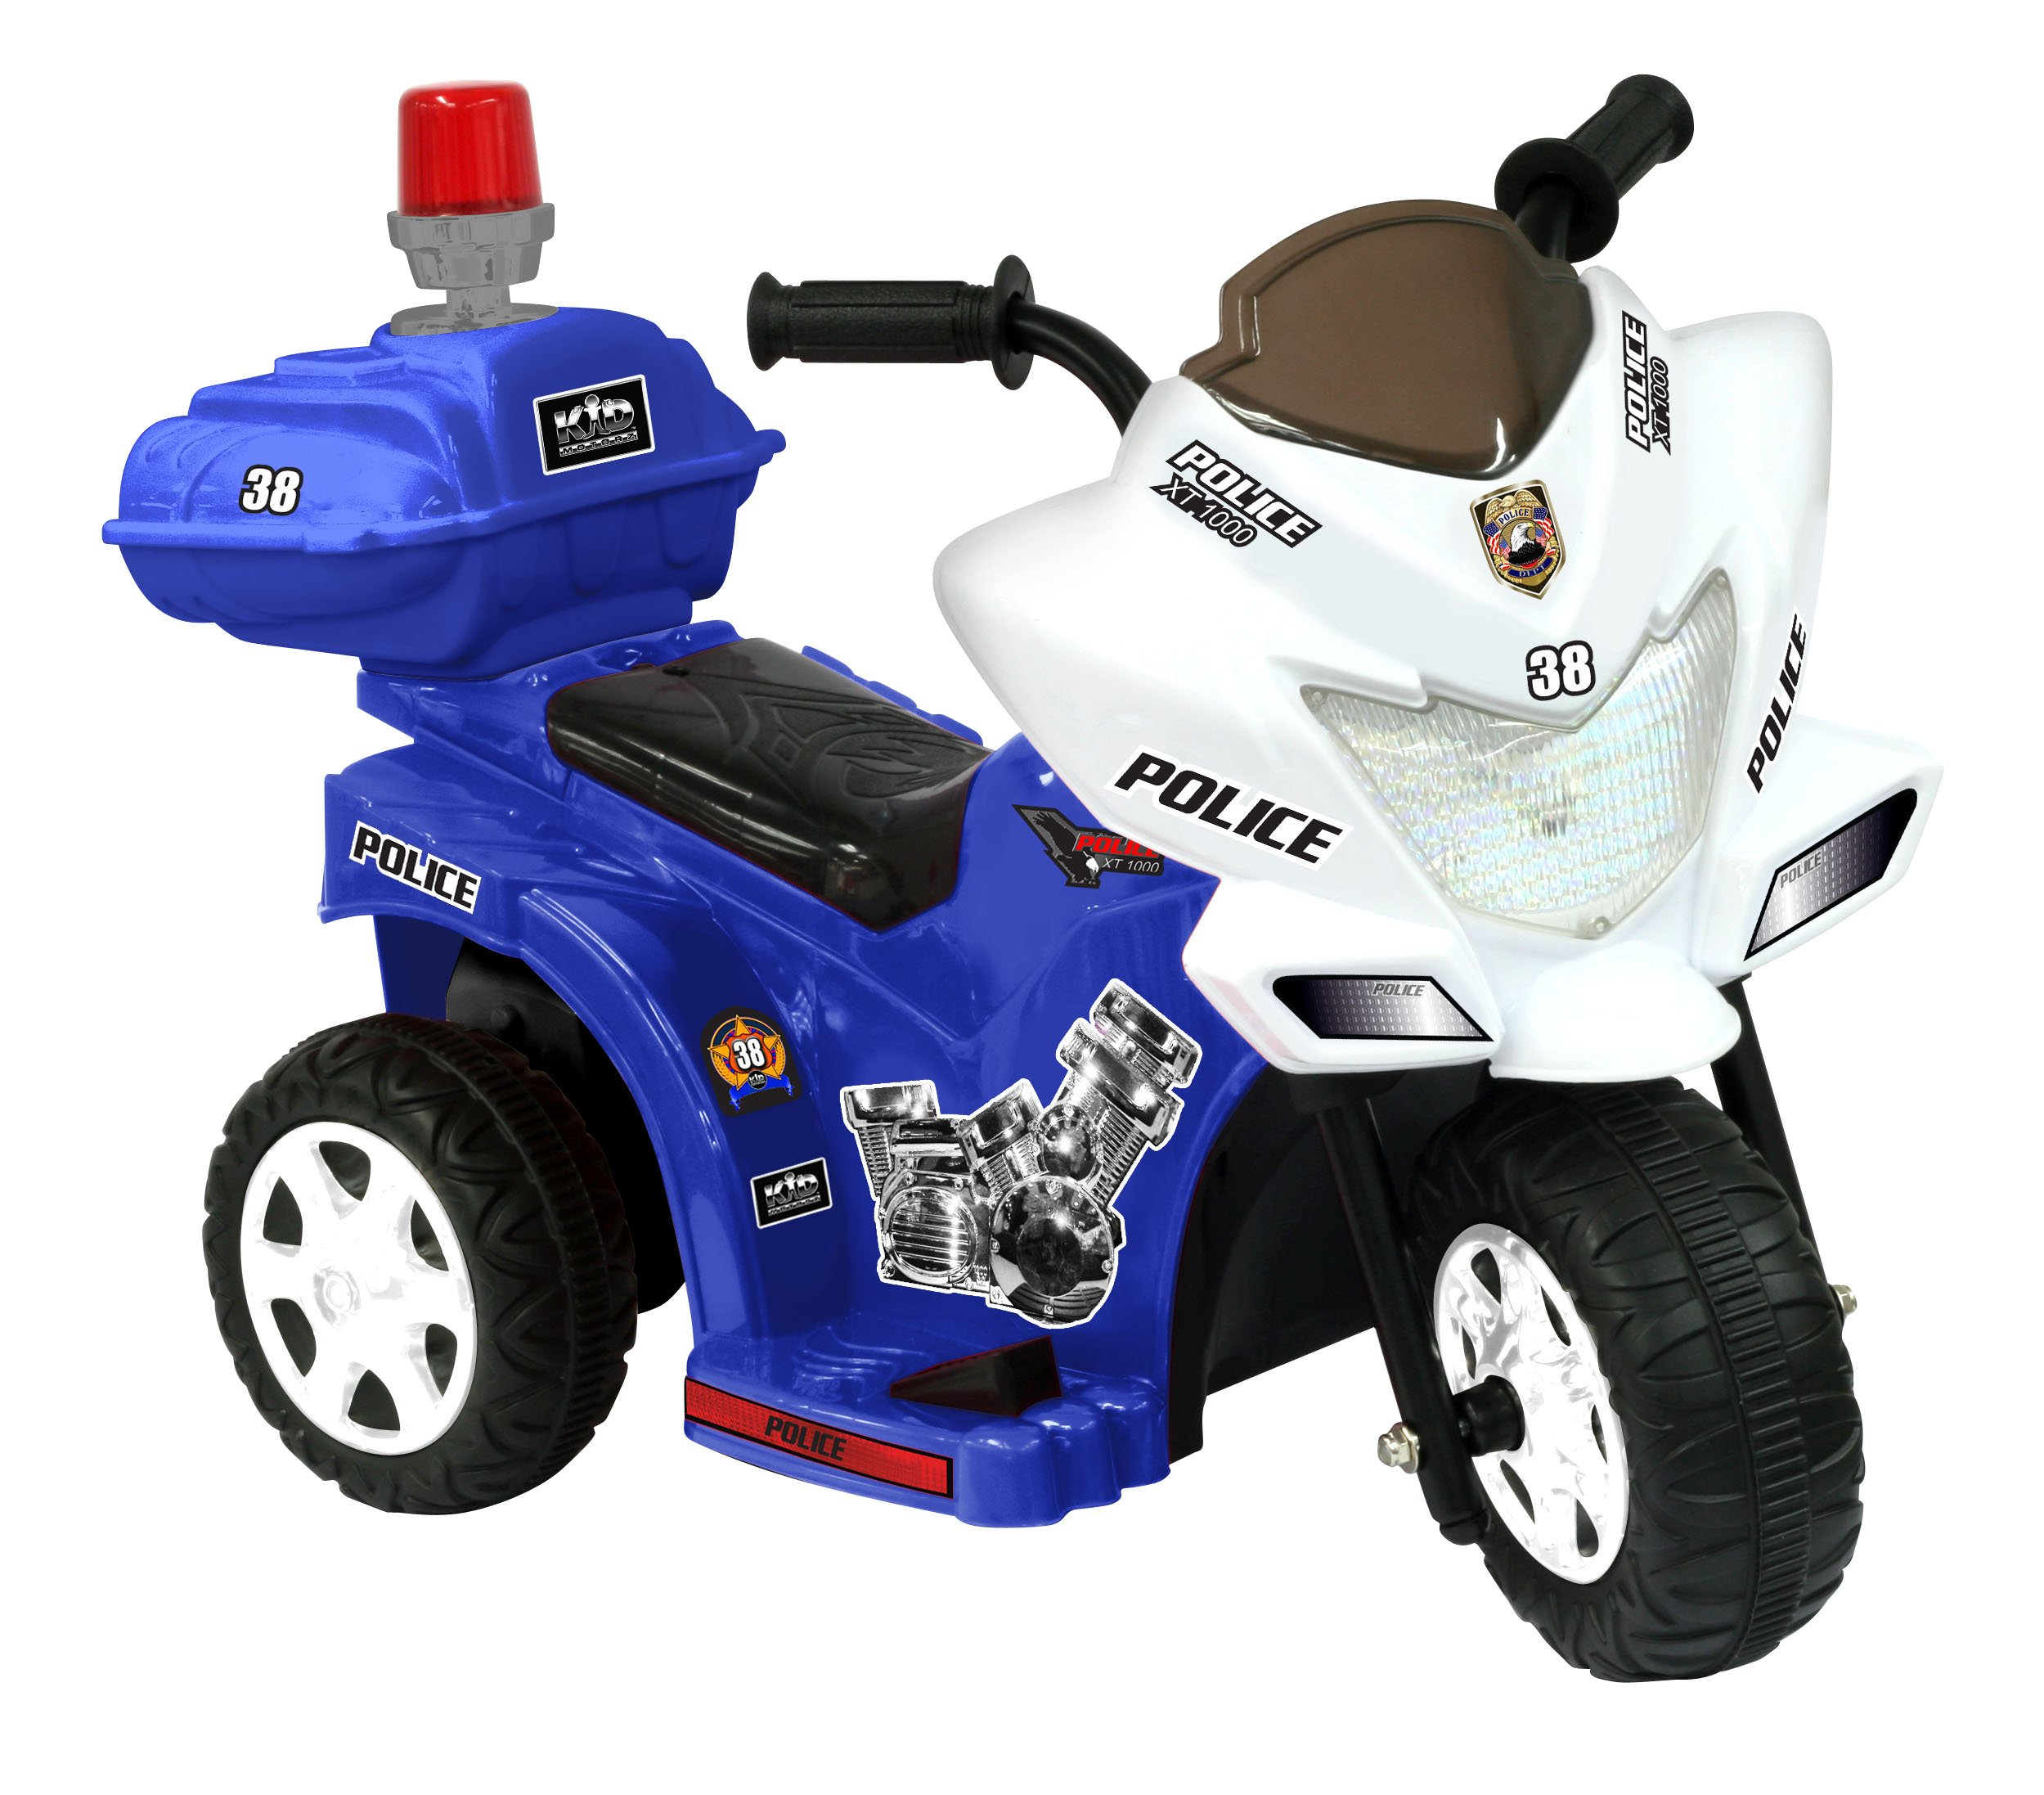 Electric Cars For Kids To Ride On Toys Police Riding Motorcycle